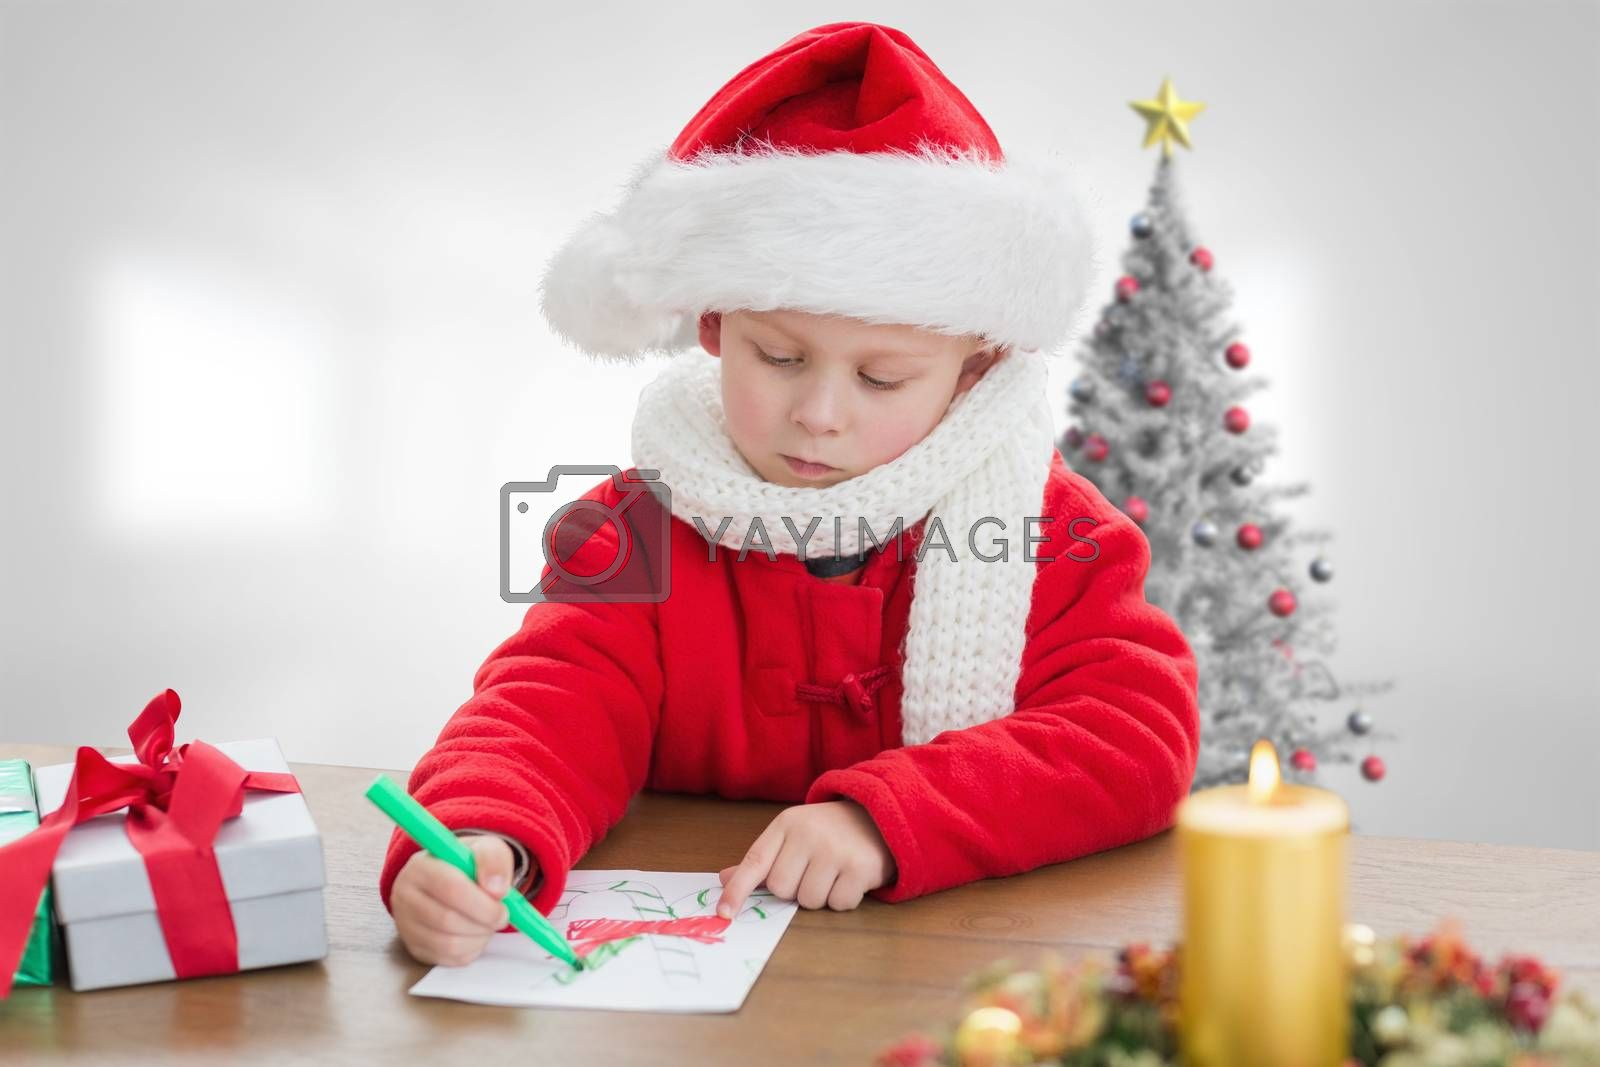 Cute boy drawing festive pictures  against christmas tree in bright room